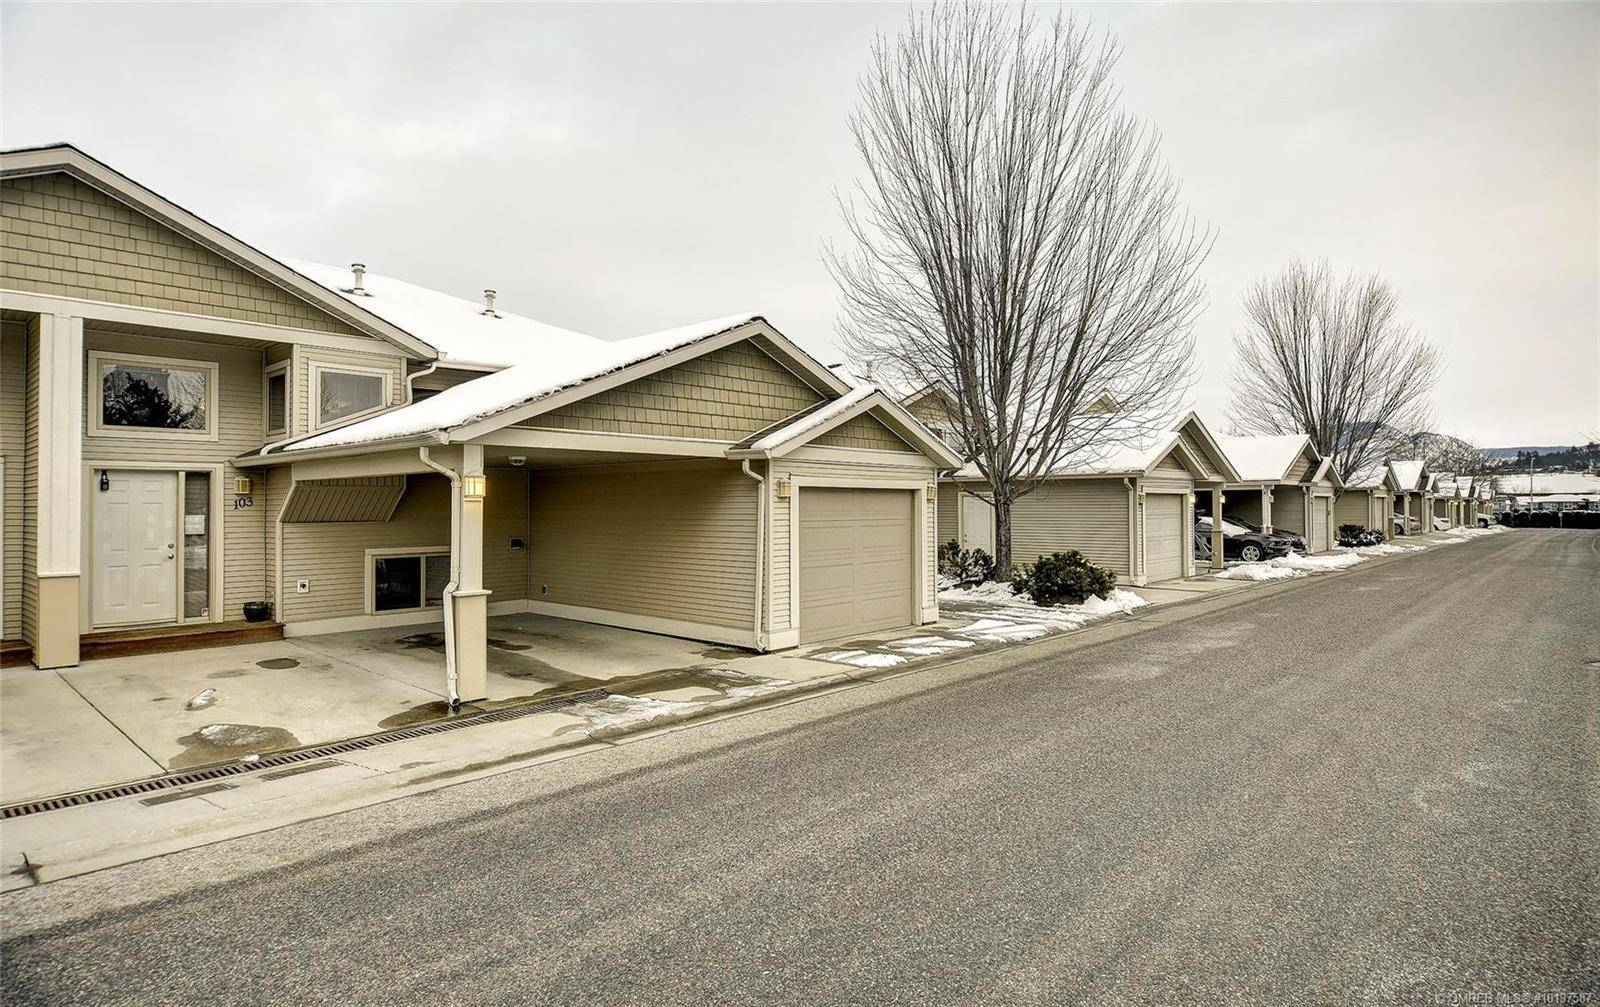 Townhouse for sale at 245 Snowsell St Unit 103 Kelowna British Columbia - MLS: 10197587